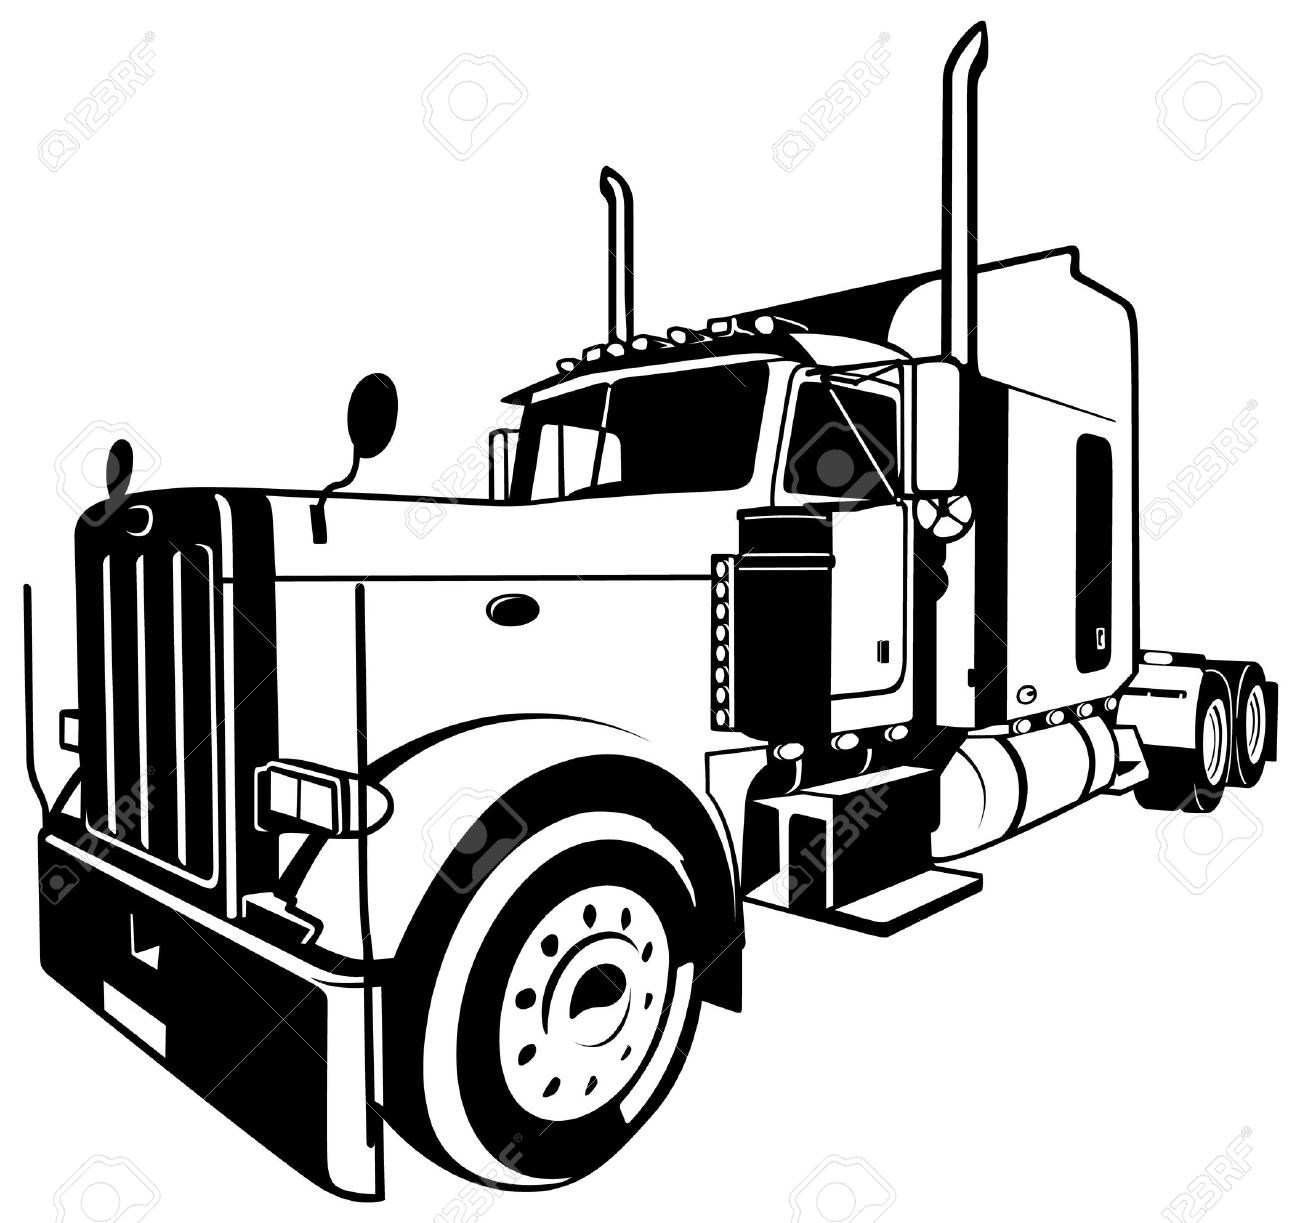 Semi Truck Line Drawing at PaintingValley.com.